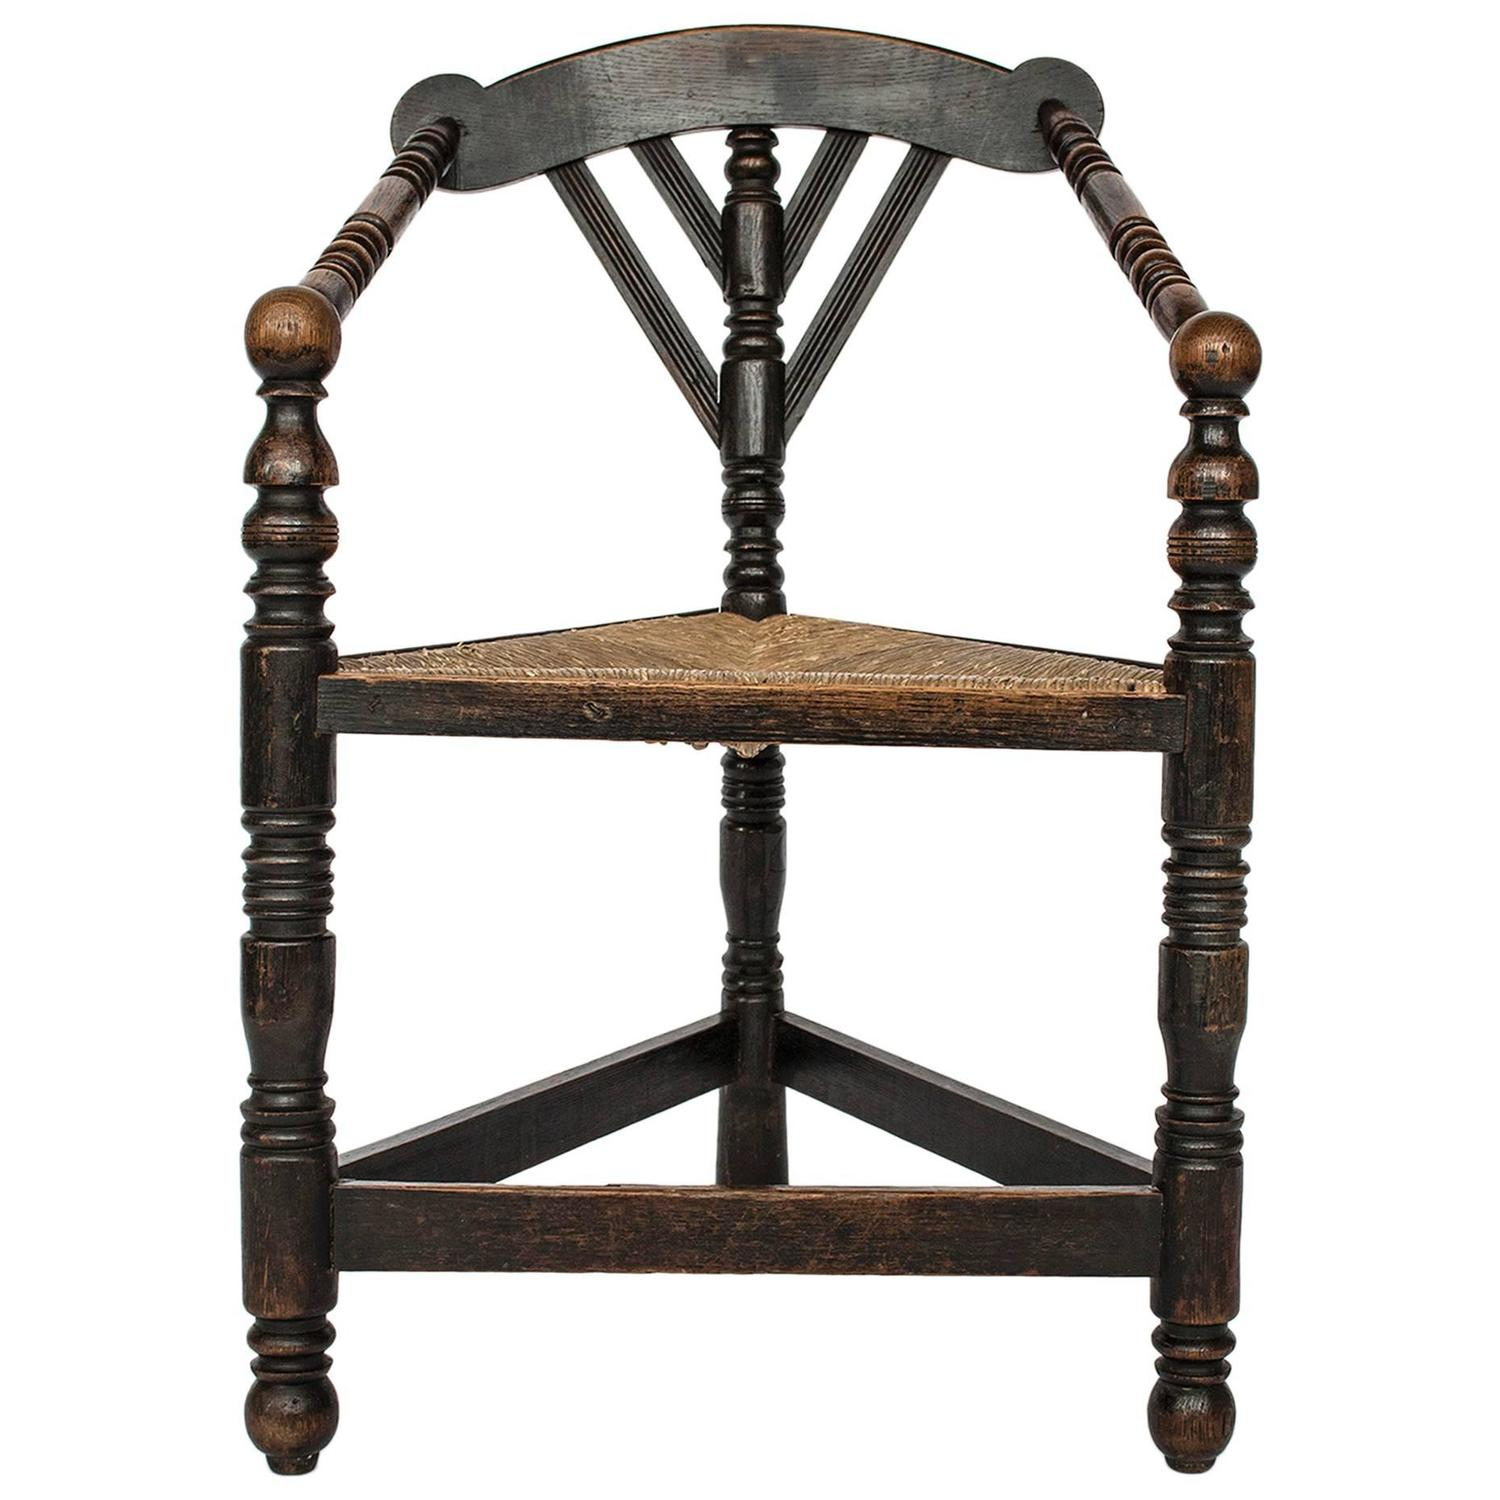 Antique Three Legged Chair Antique Furniture